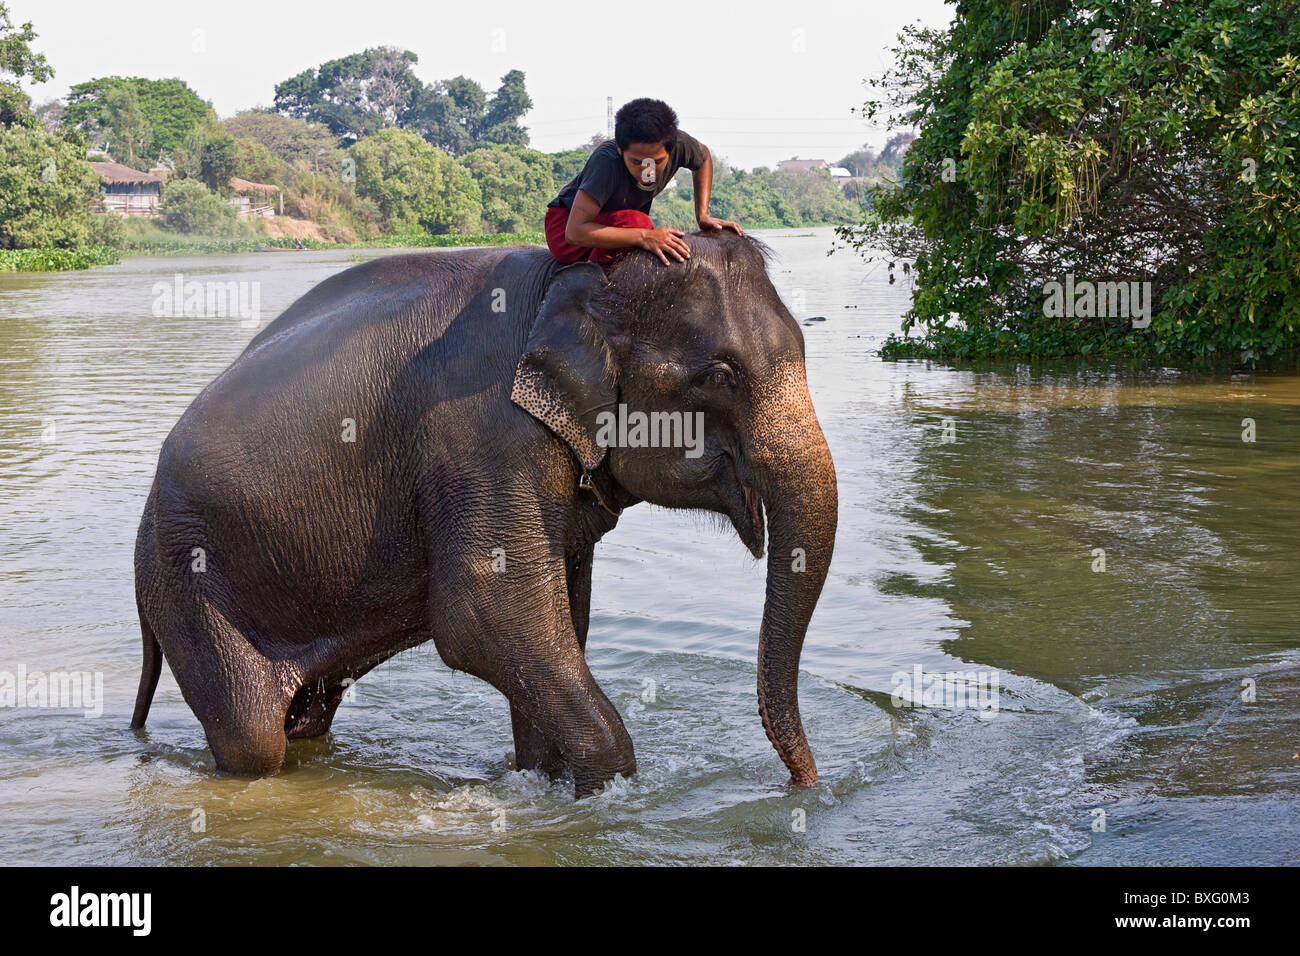 Riding elephants as they swim in a river at Elephant Stay ...